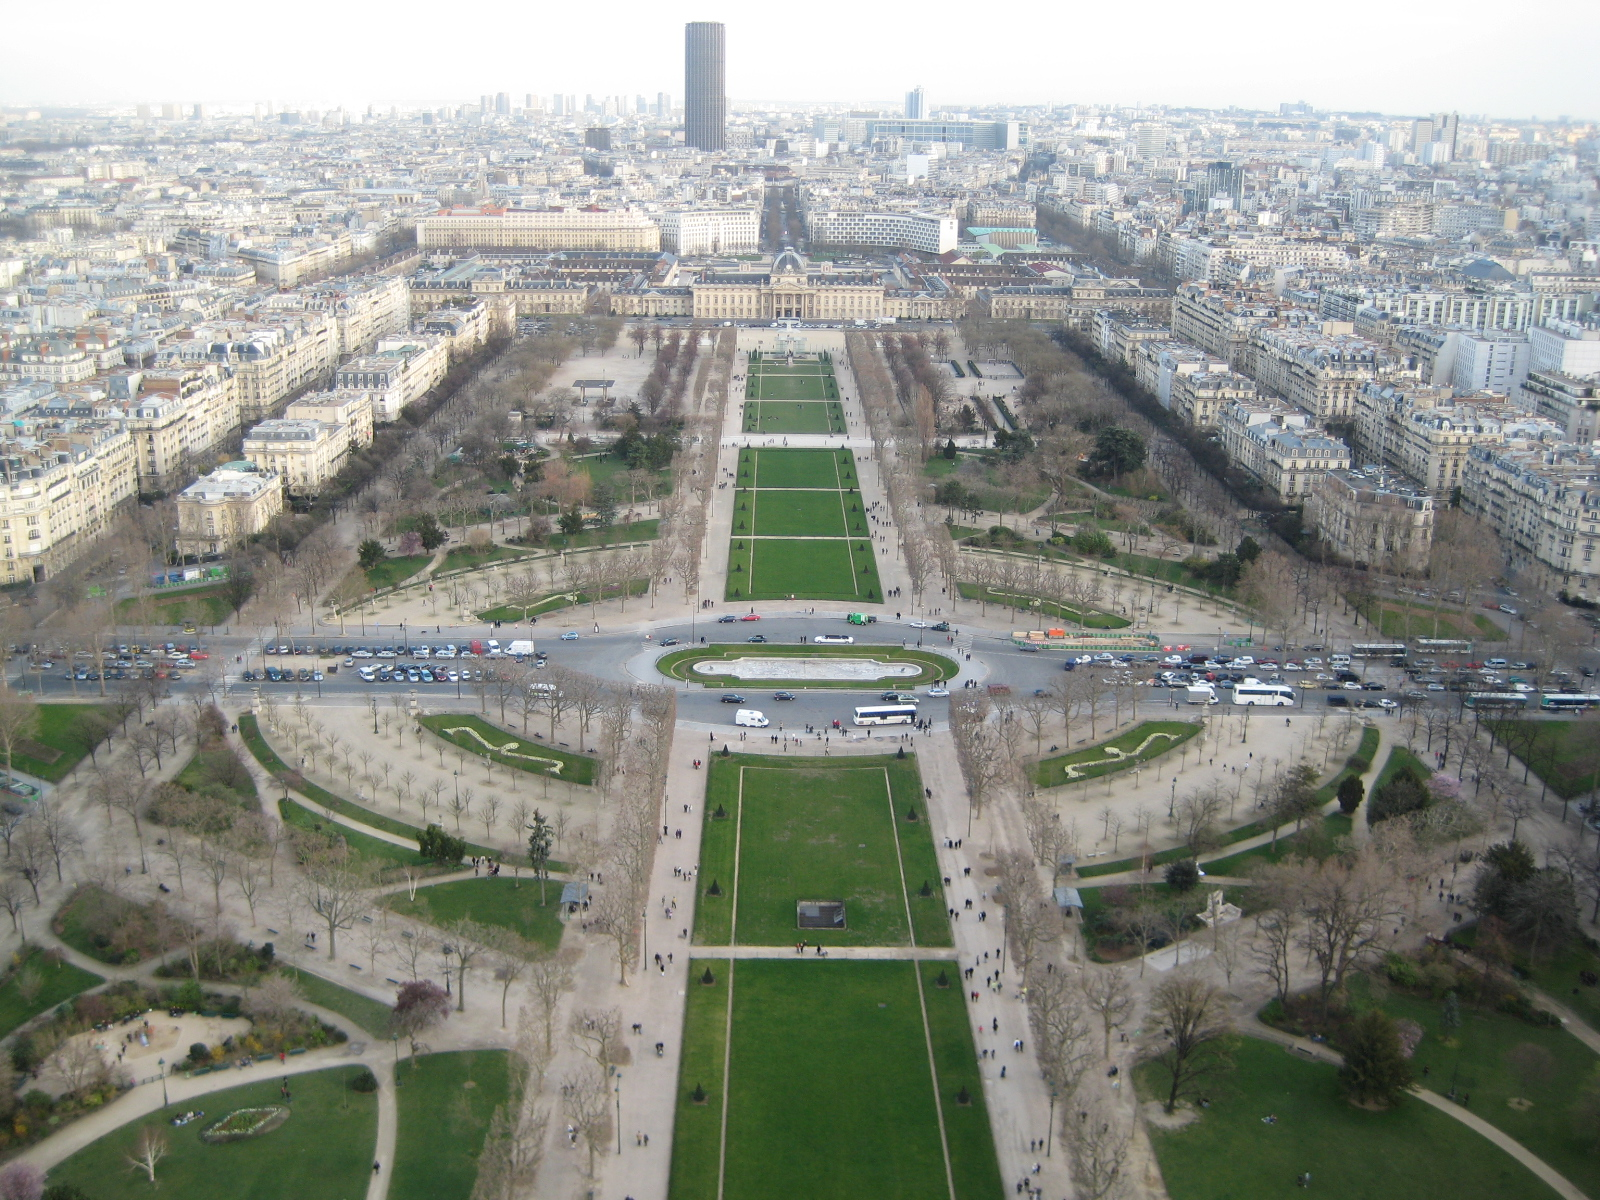 A view from the middle tier of the Eiffel Tower